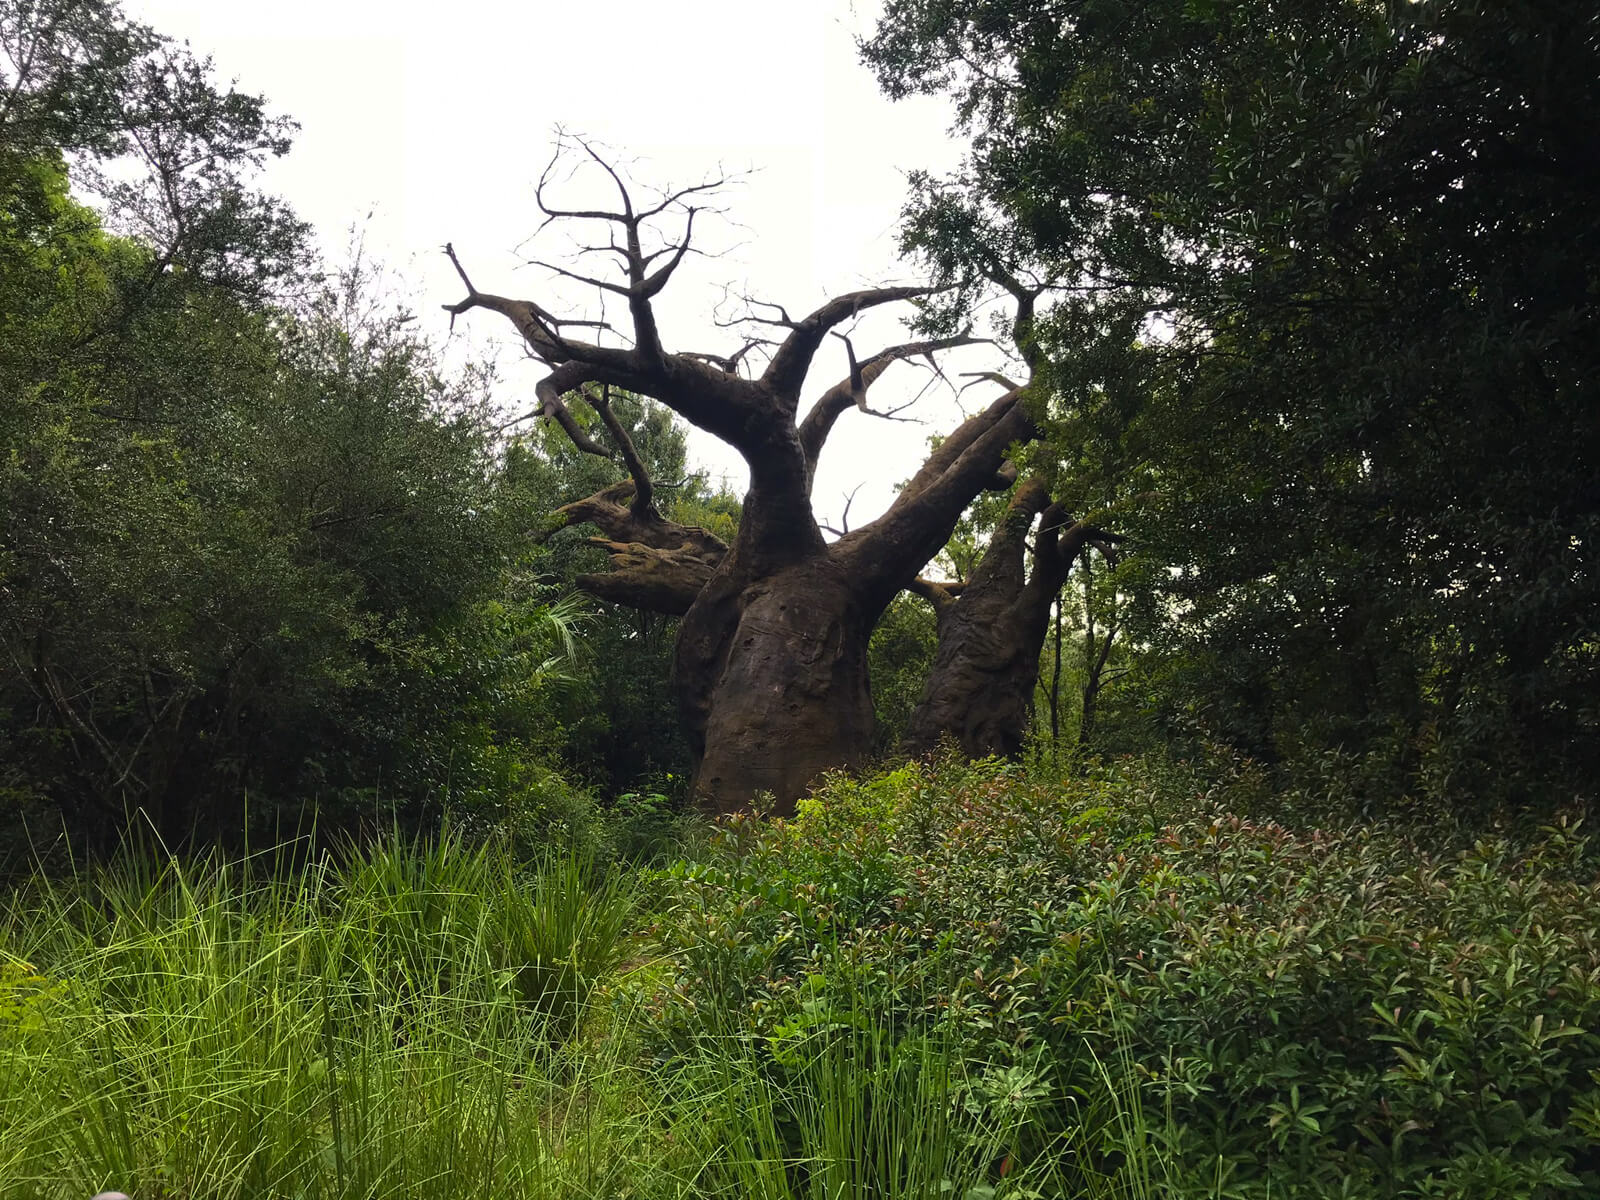 A large tree looking like an upside-down tree with its roots in the air. It is surrounded by tall grass